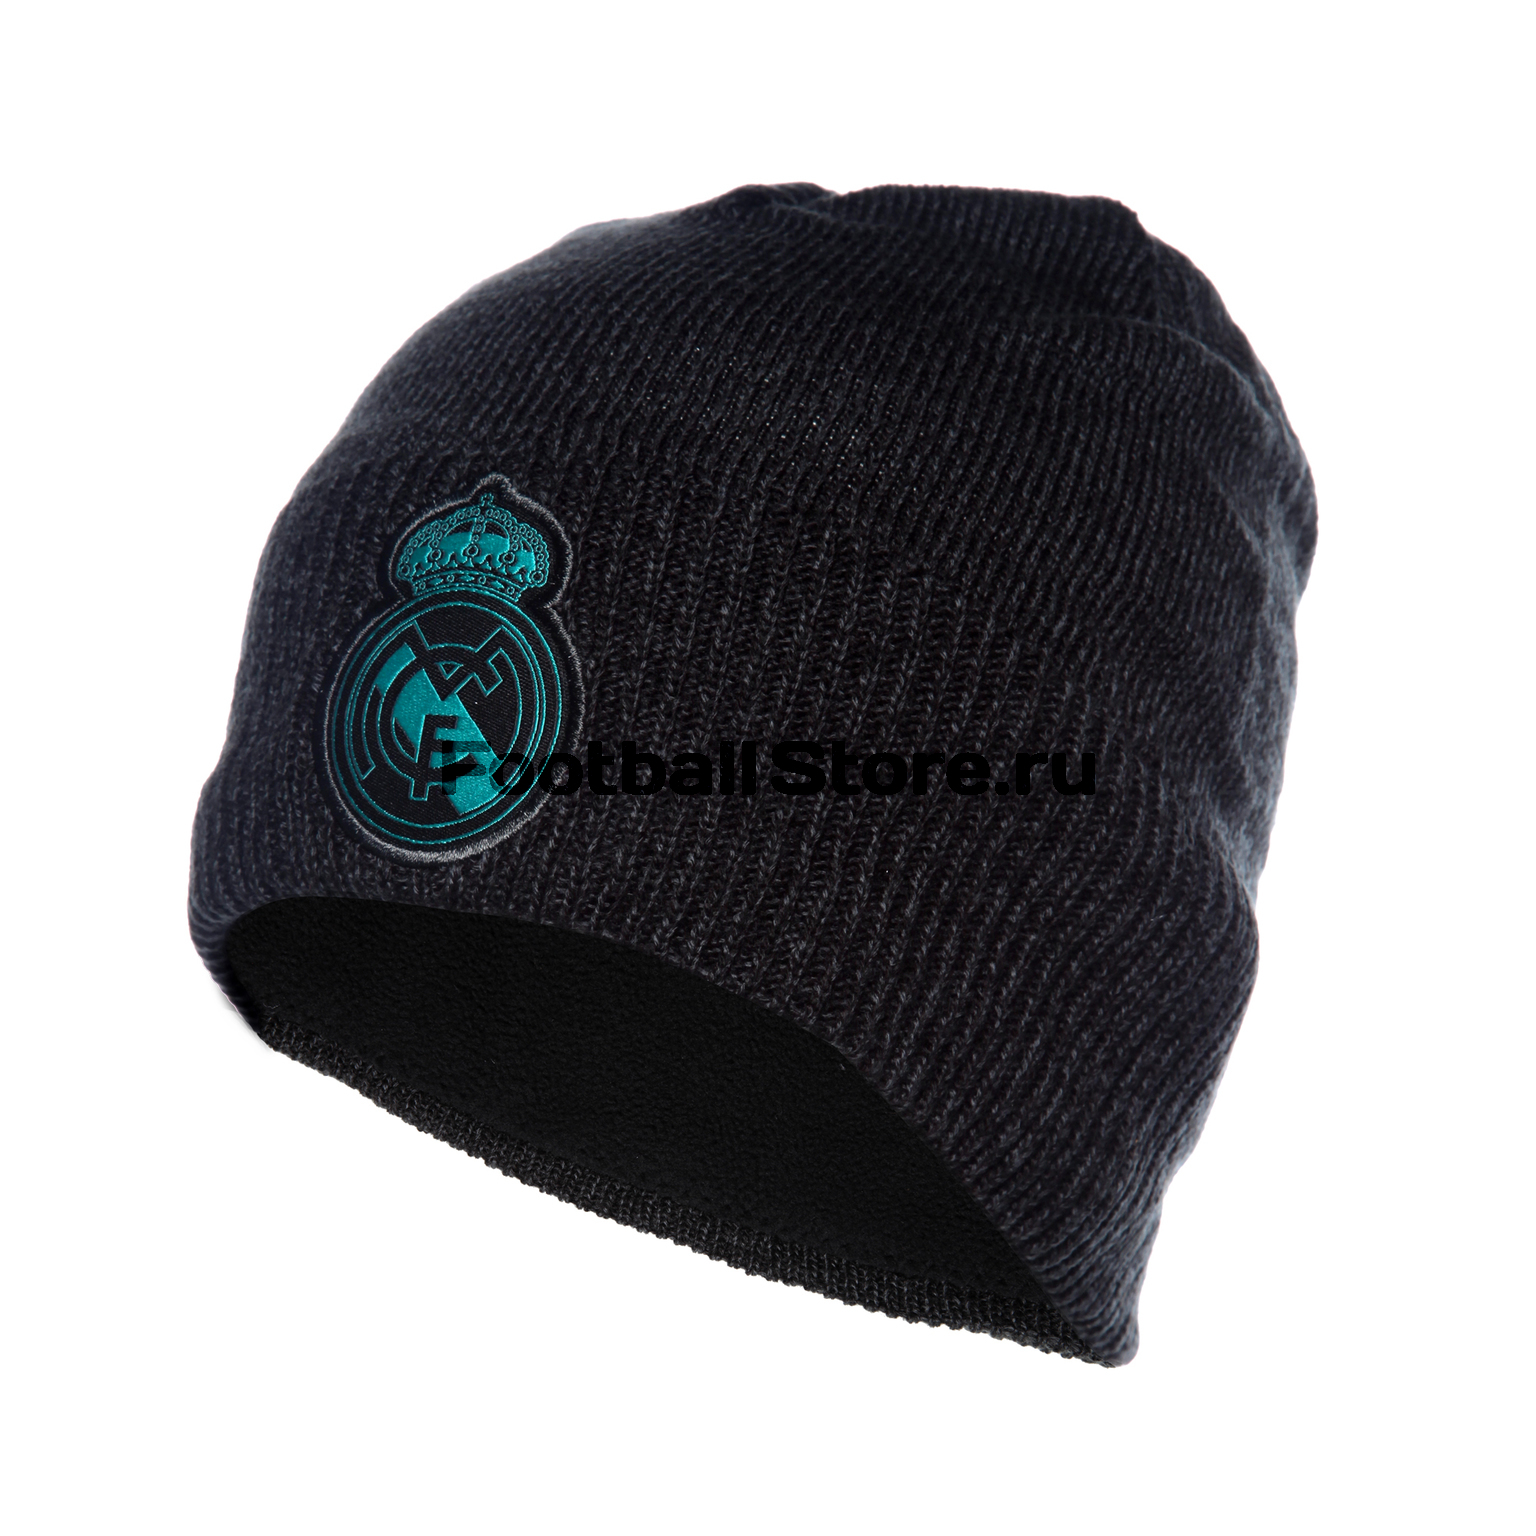 Real Madrid Adidas Шапка Adidas Real Madrid Beanie BR7165 real madrid adidas свитер adidas real madrid euhybrid top bq7851